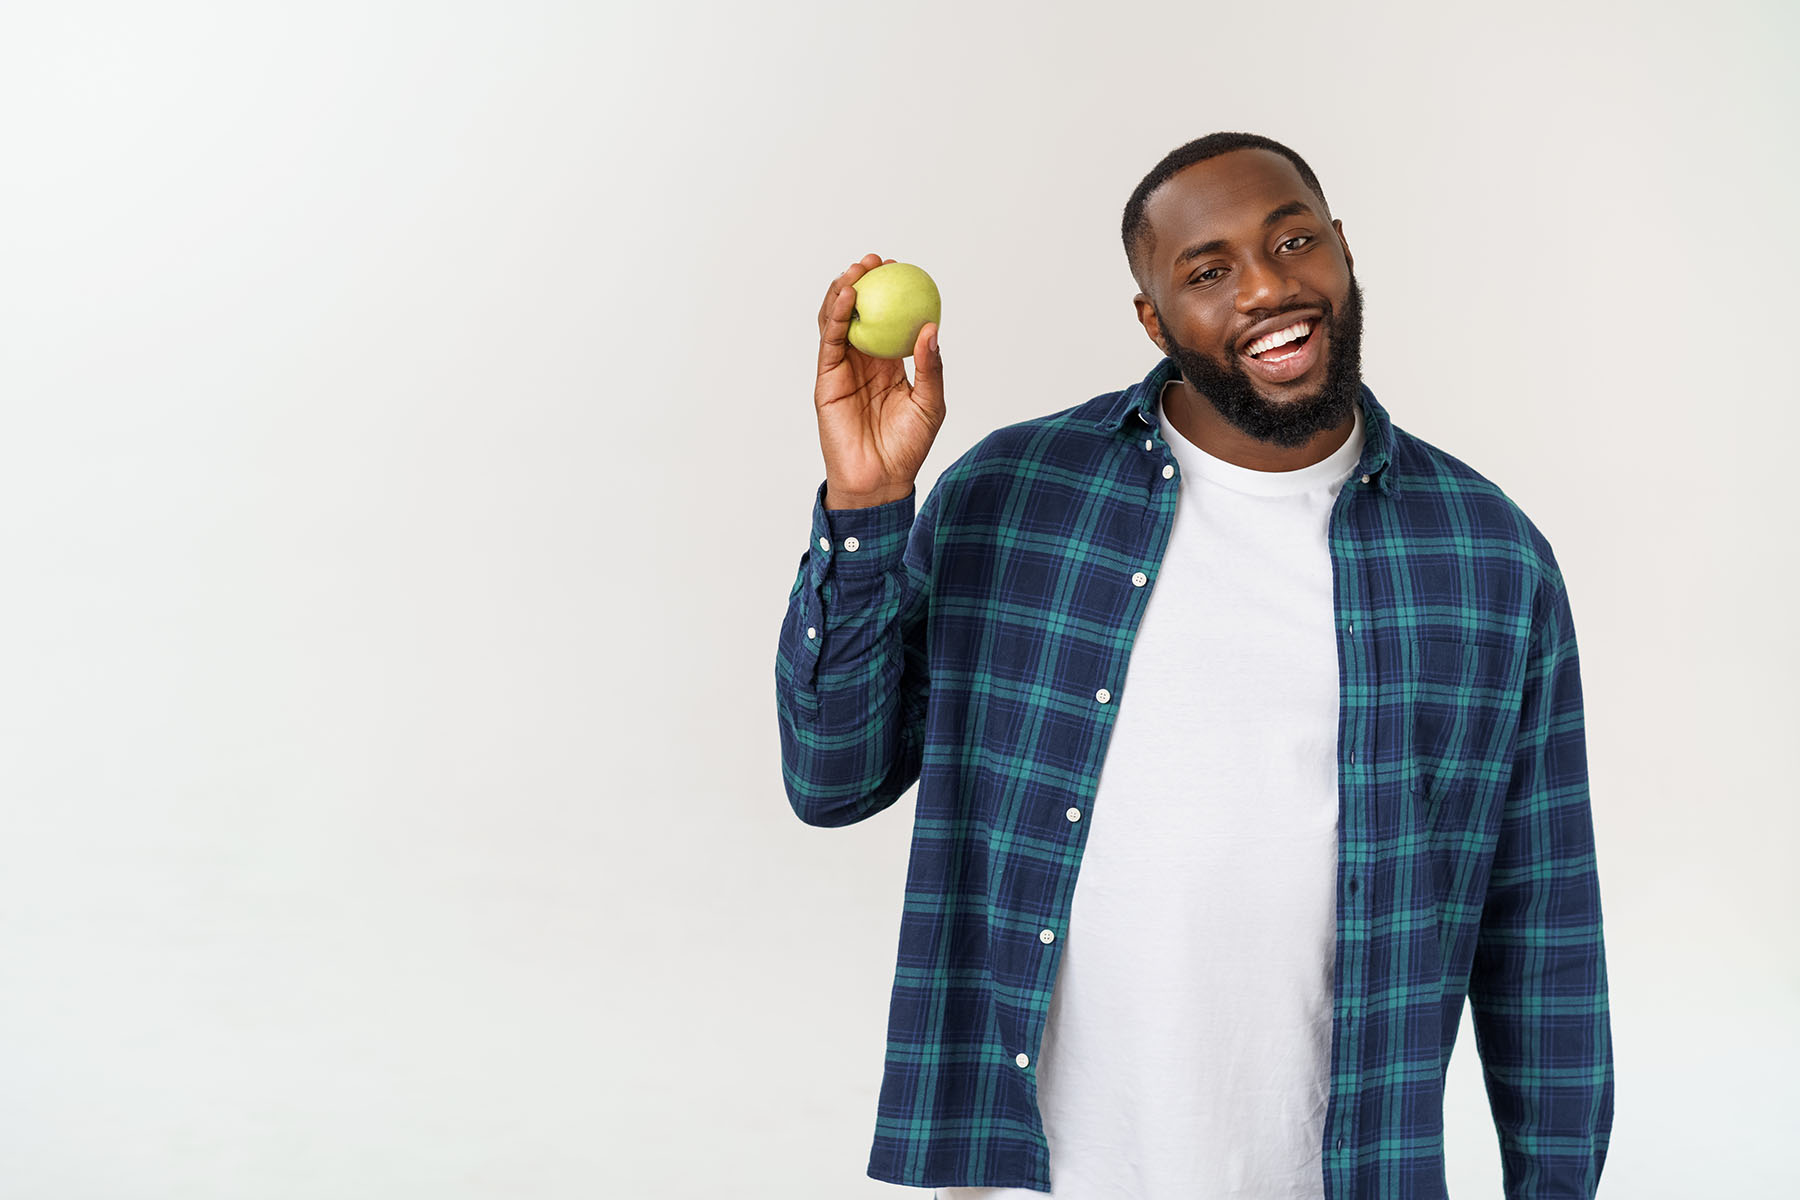 African man with green apple isolate over white background